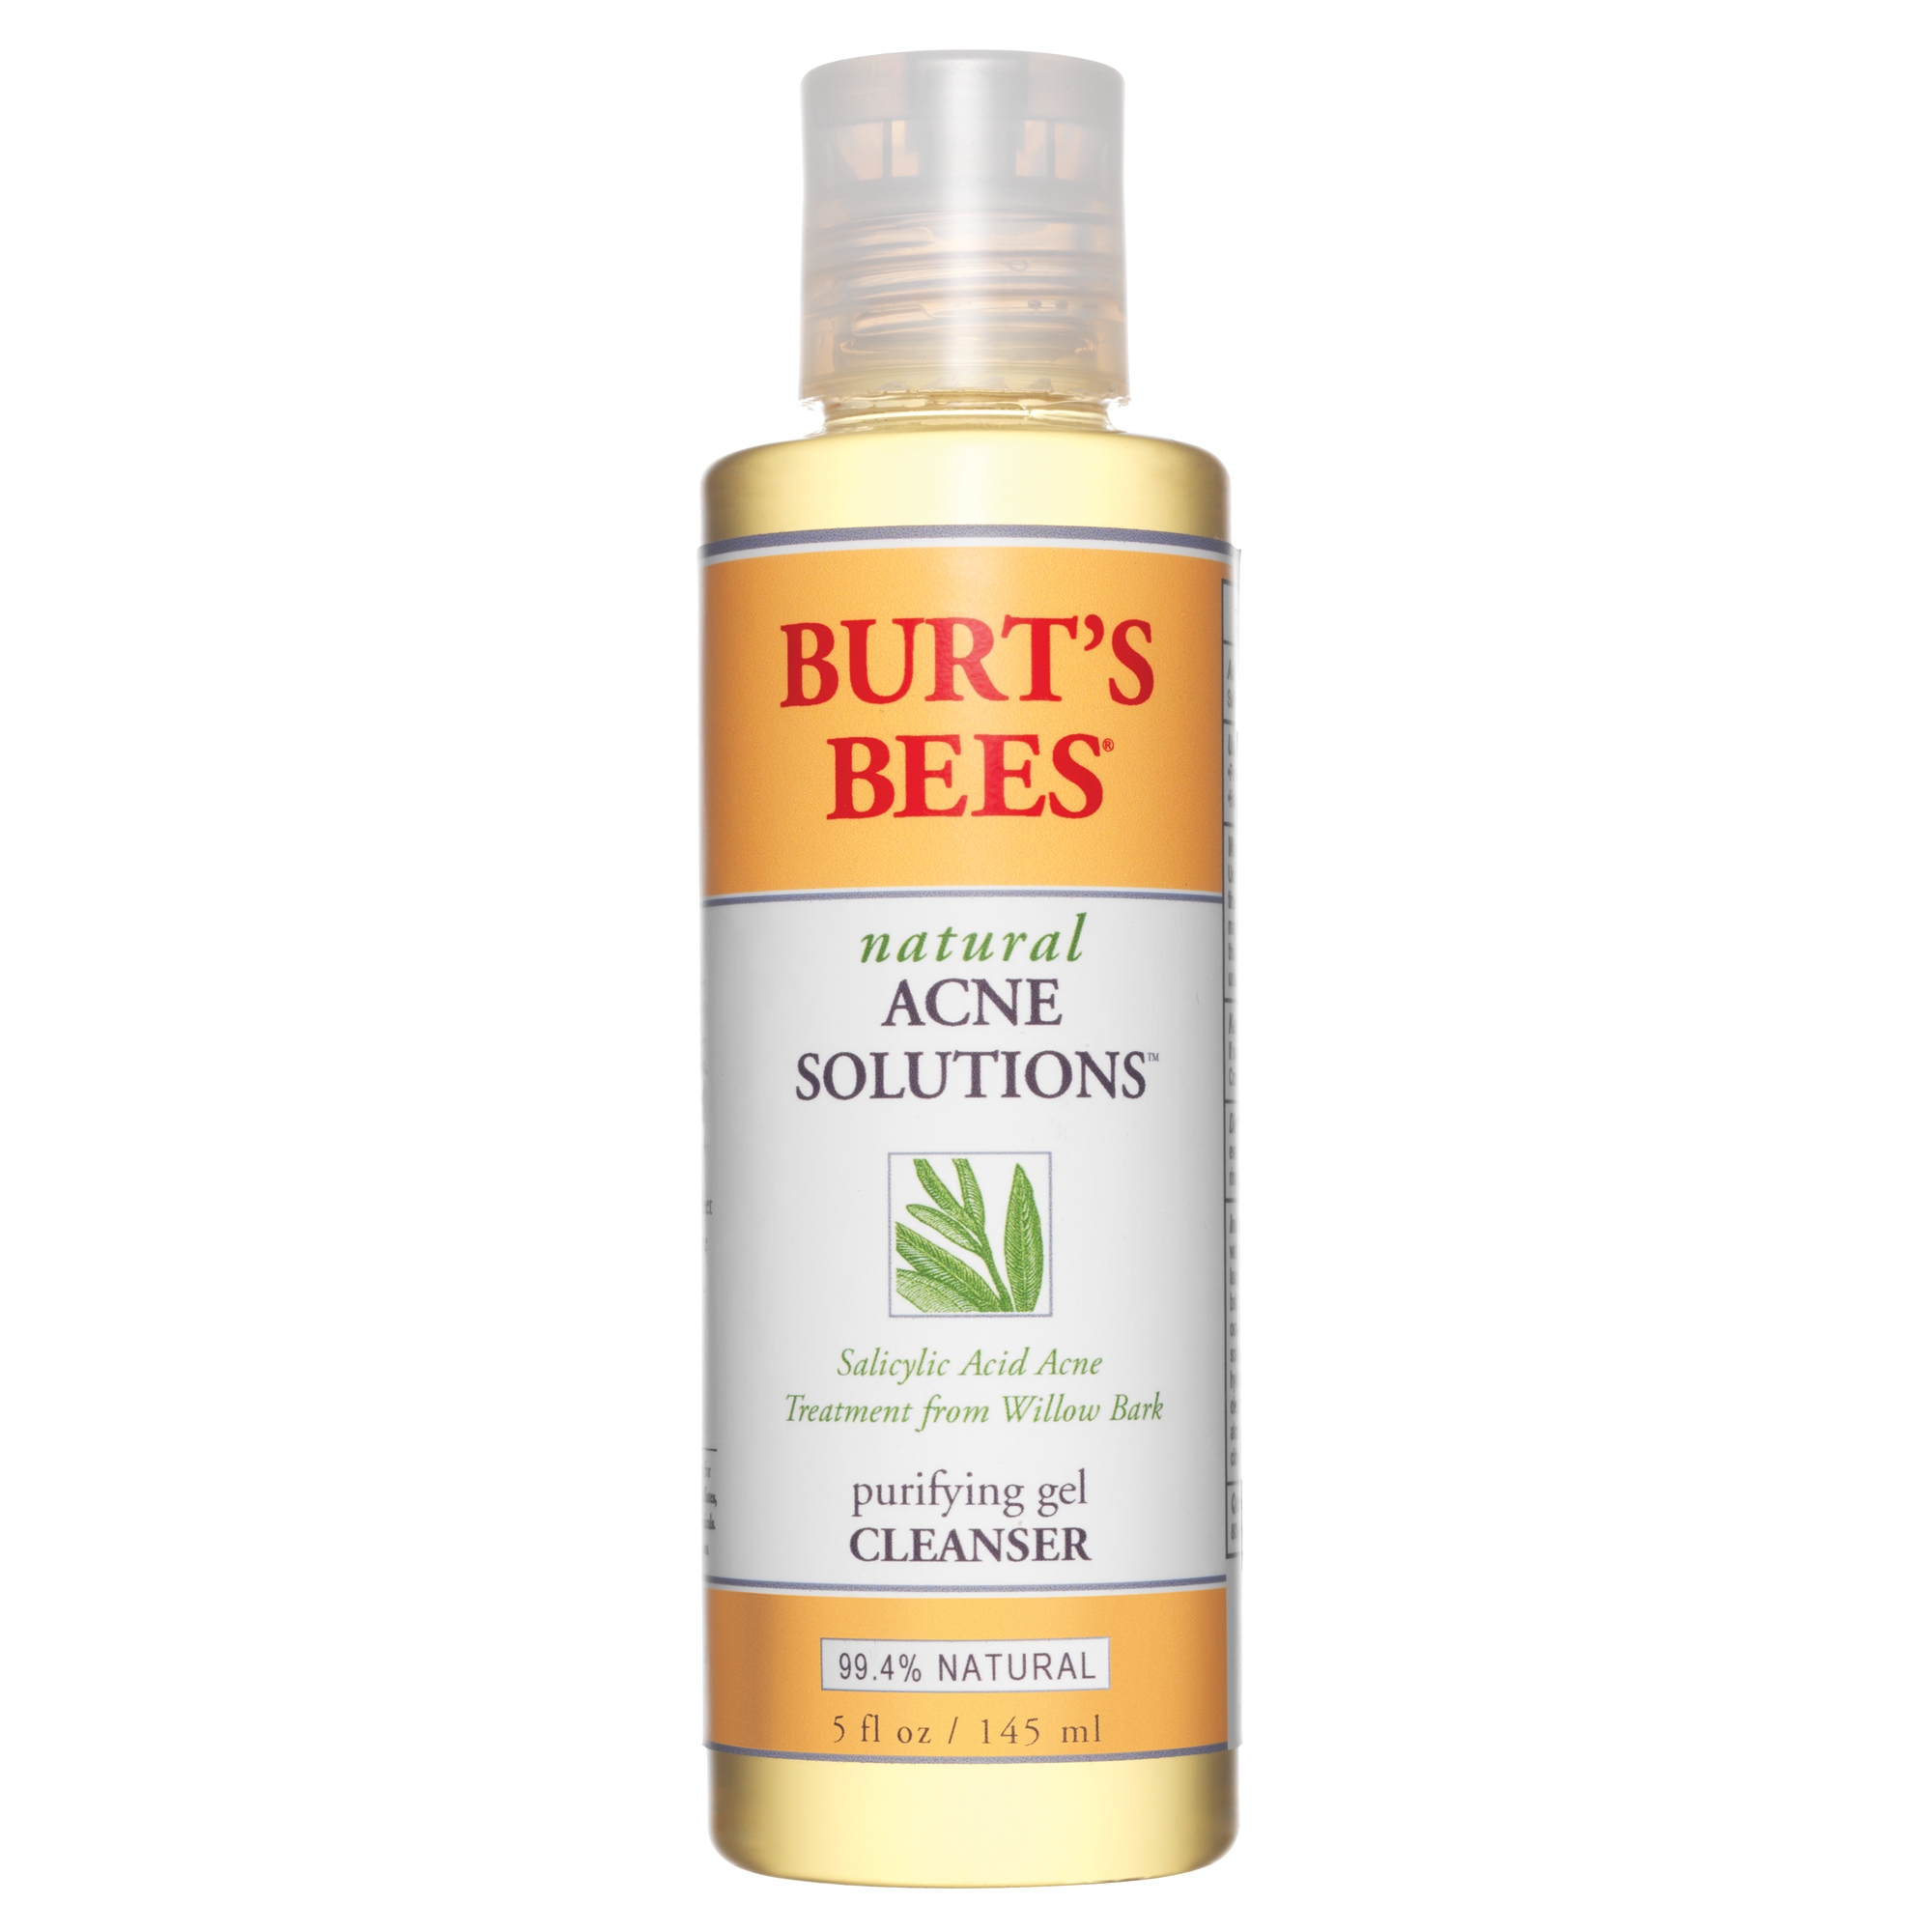 Burt's Bees Natural Acne Solutions Purifying Gel Cleanser, 5.0 FL OZ